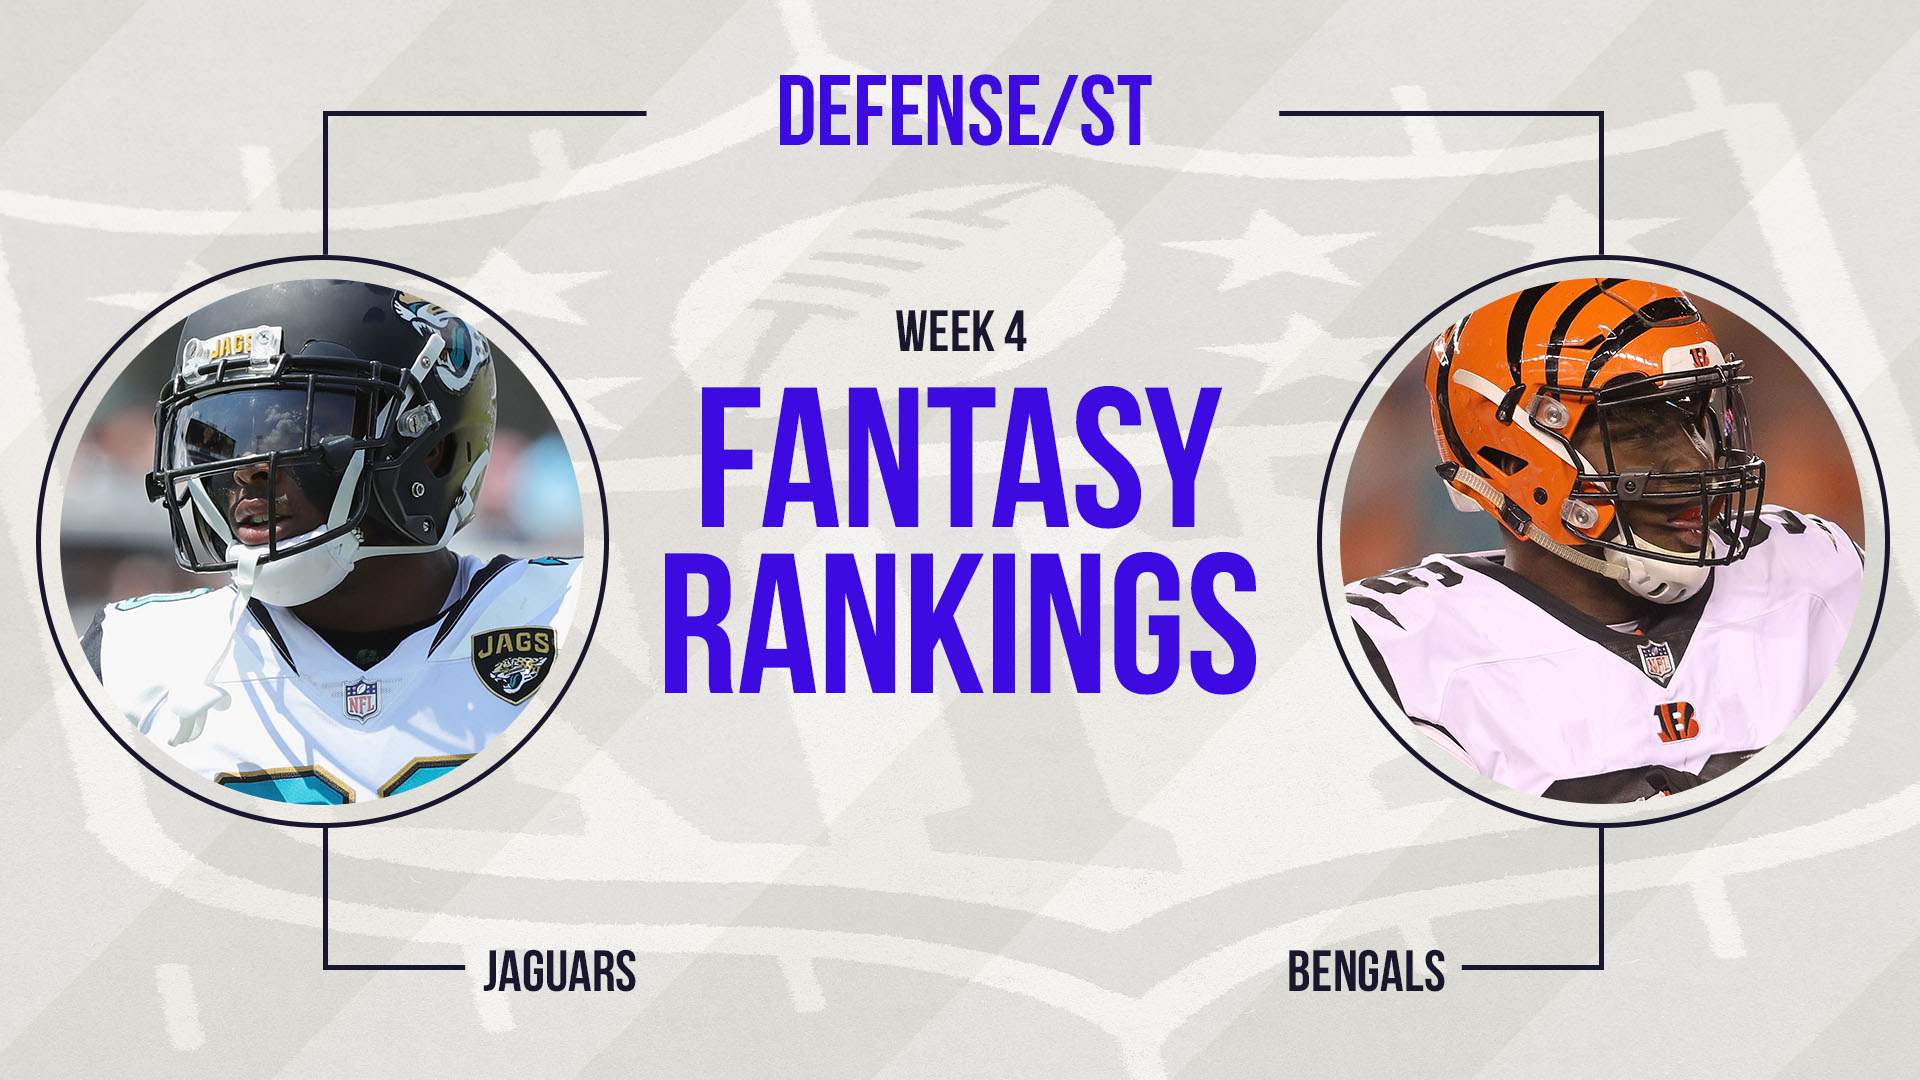 week 3 legal defenses The vikings, chicago bears, houston texans and eagles round out my top five defenses for week 3 if you need help at the position and ideas for streaming options at other spots in your lineup.